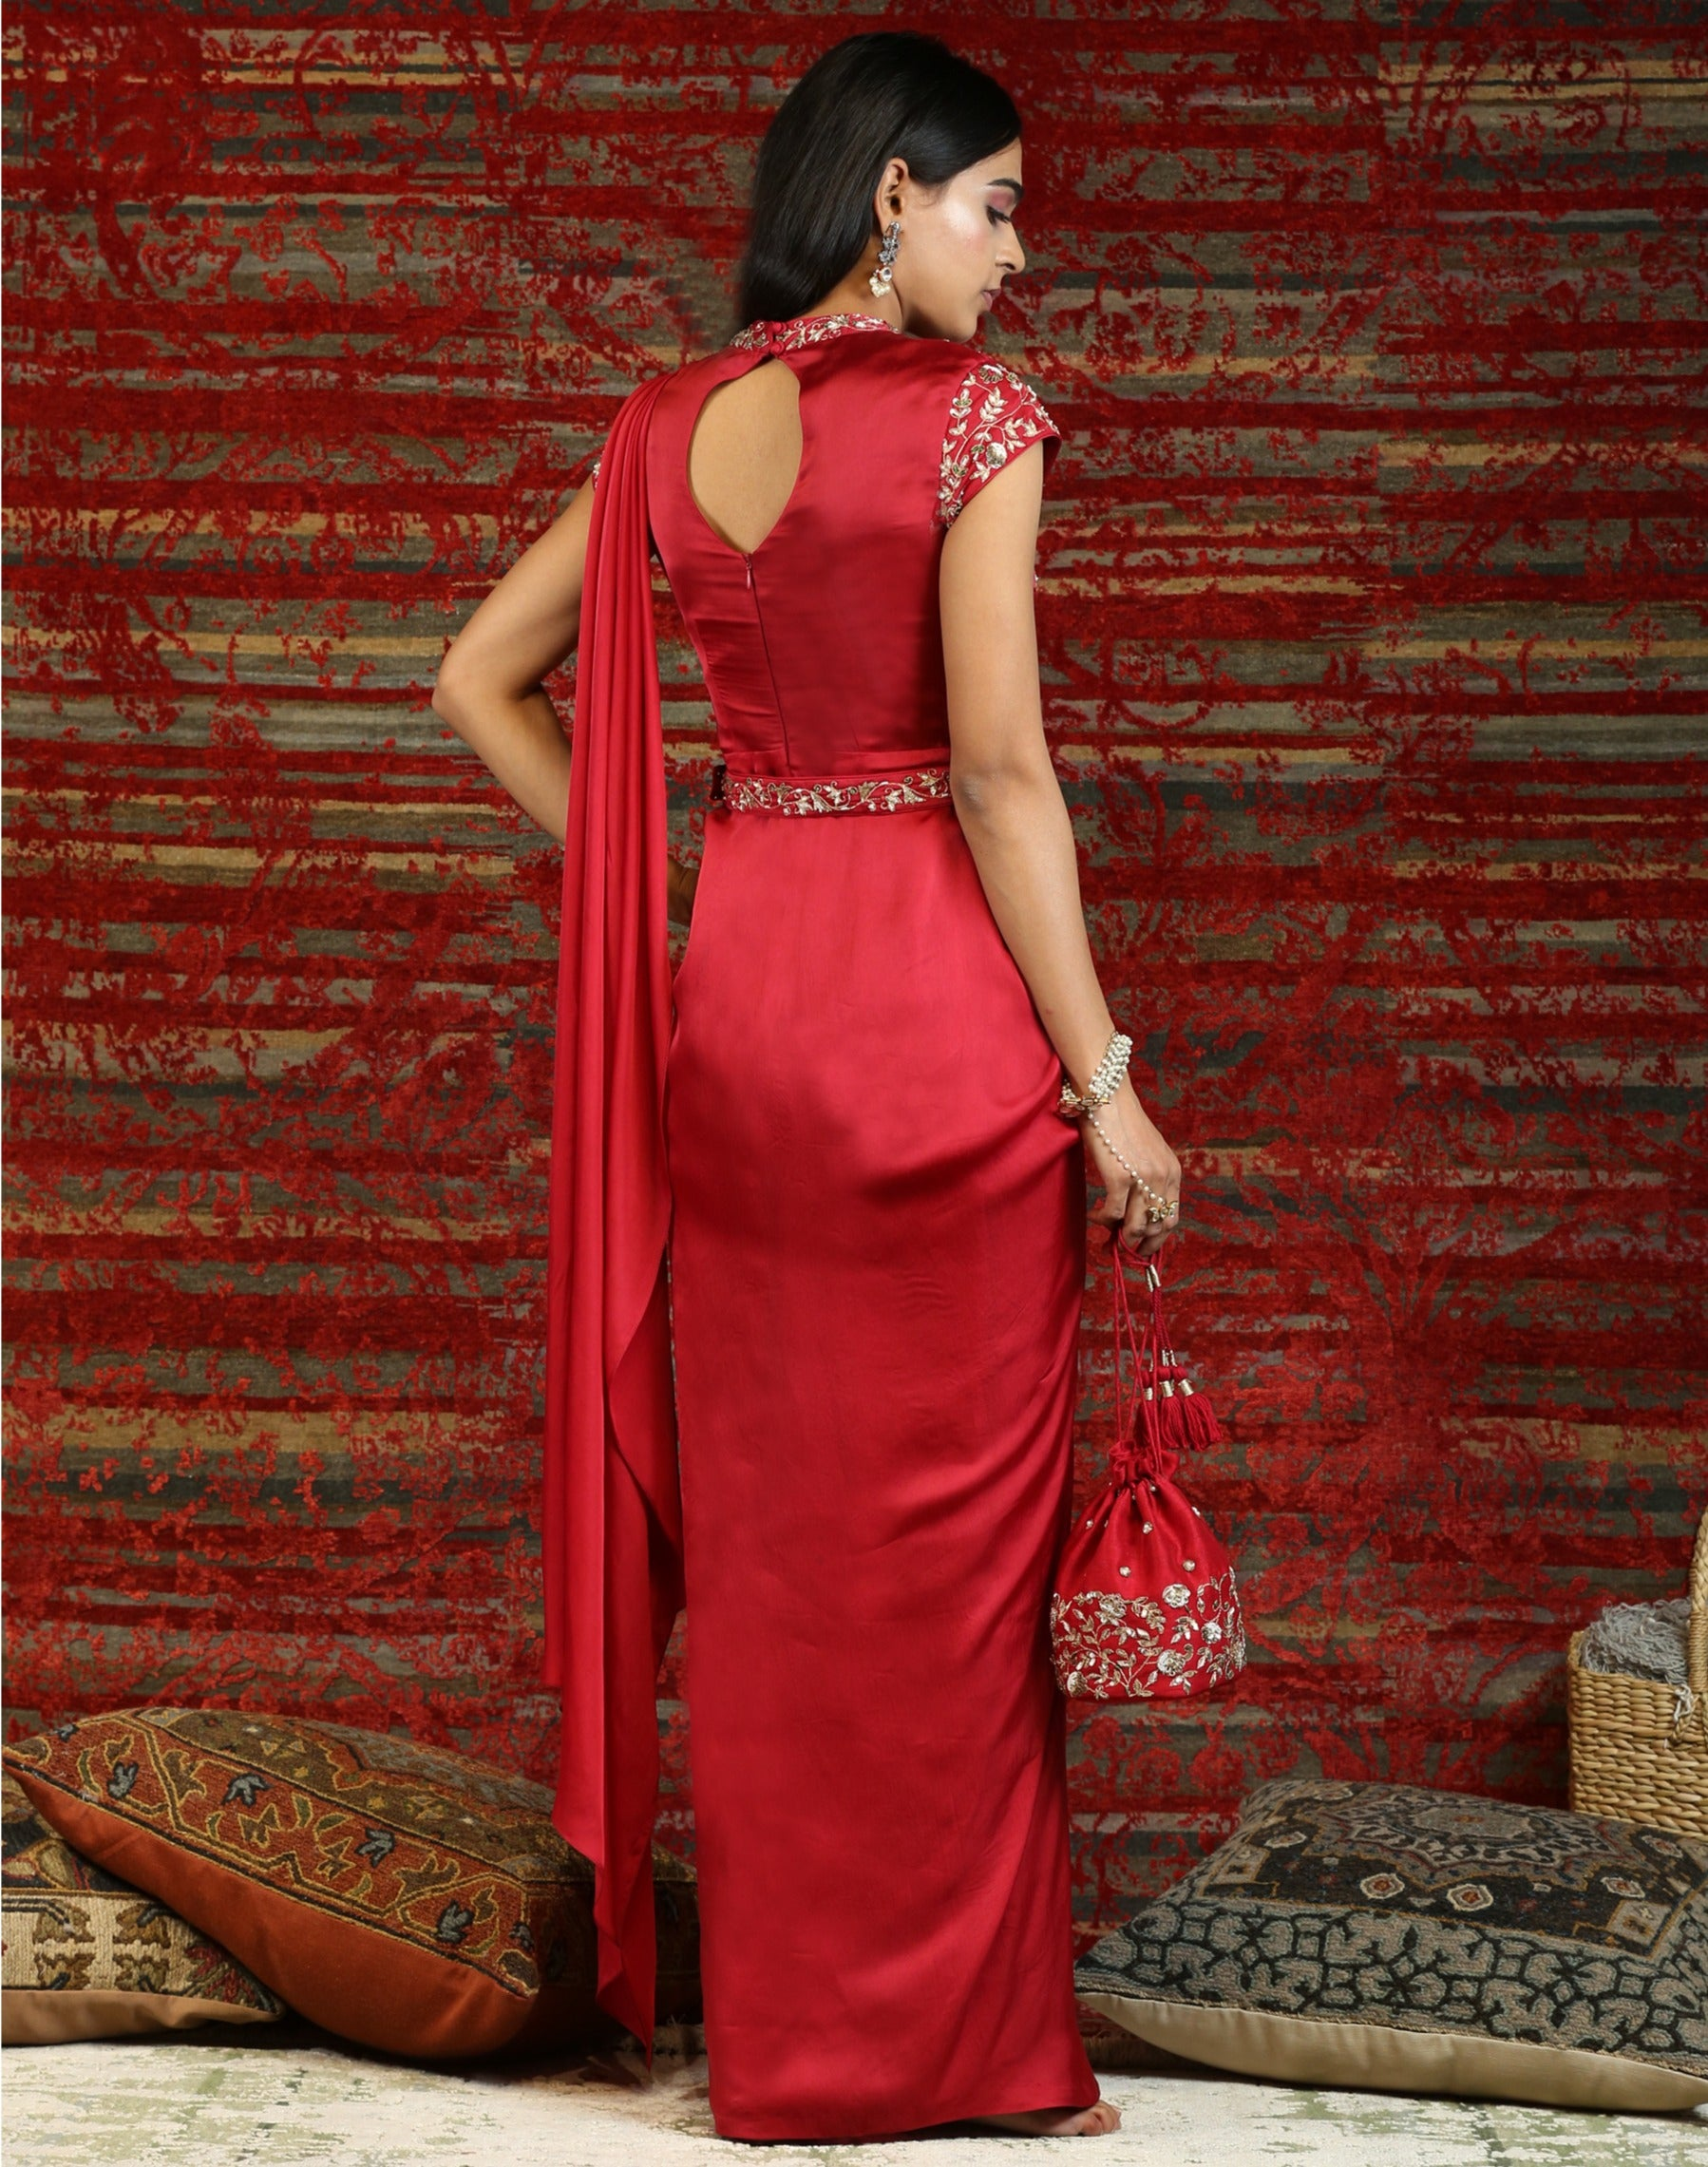 Red Pre-Draped Sari with Belt